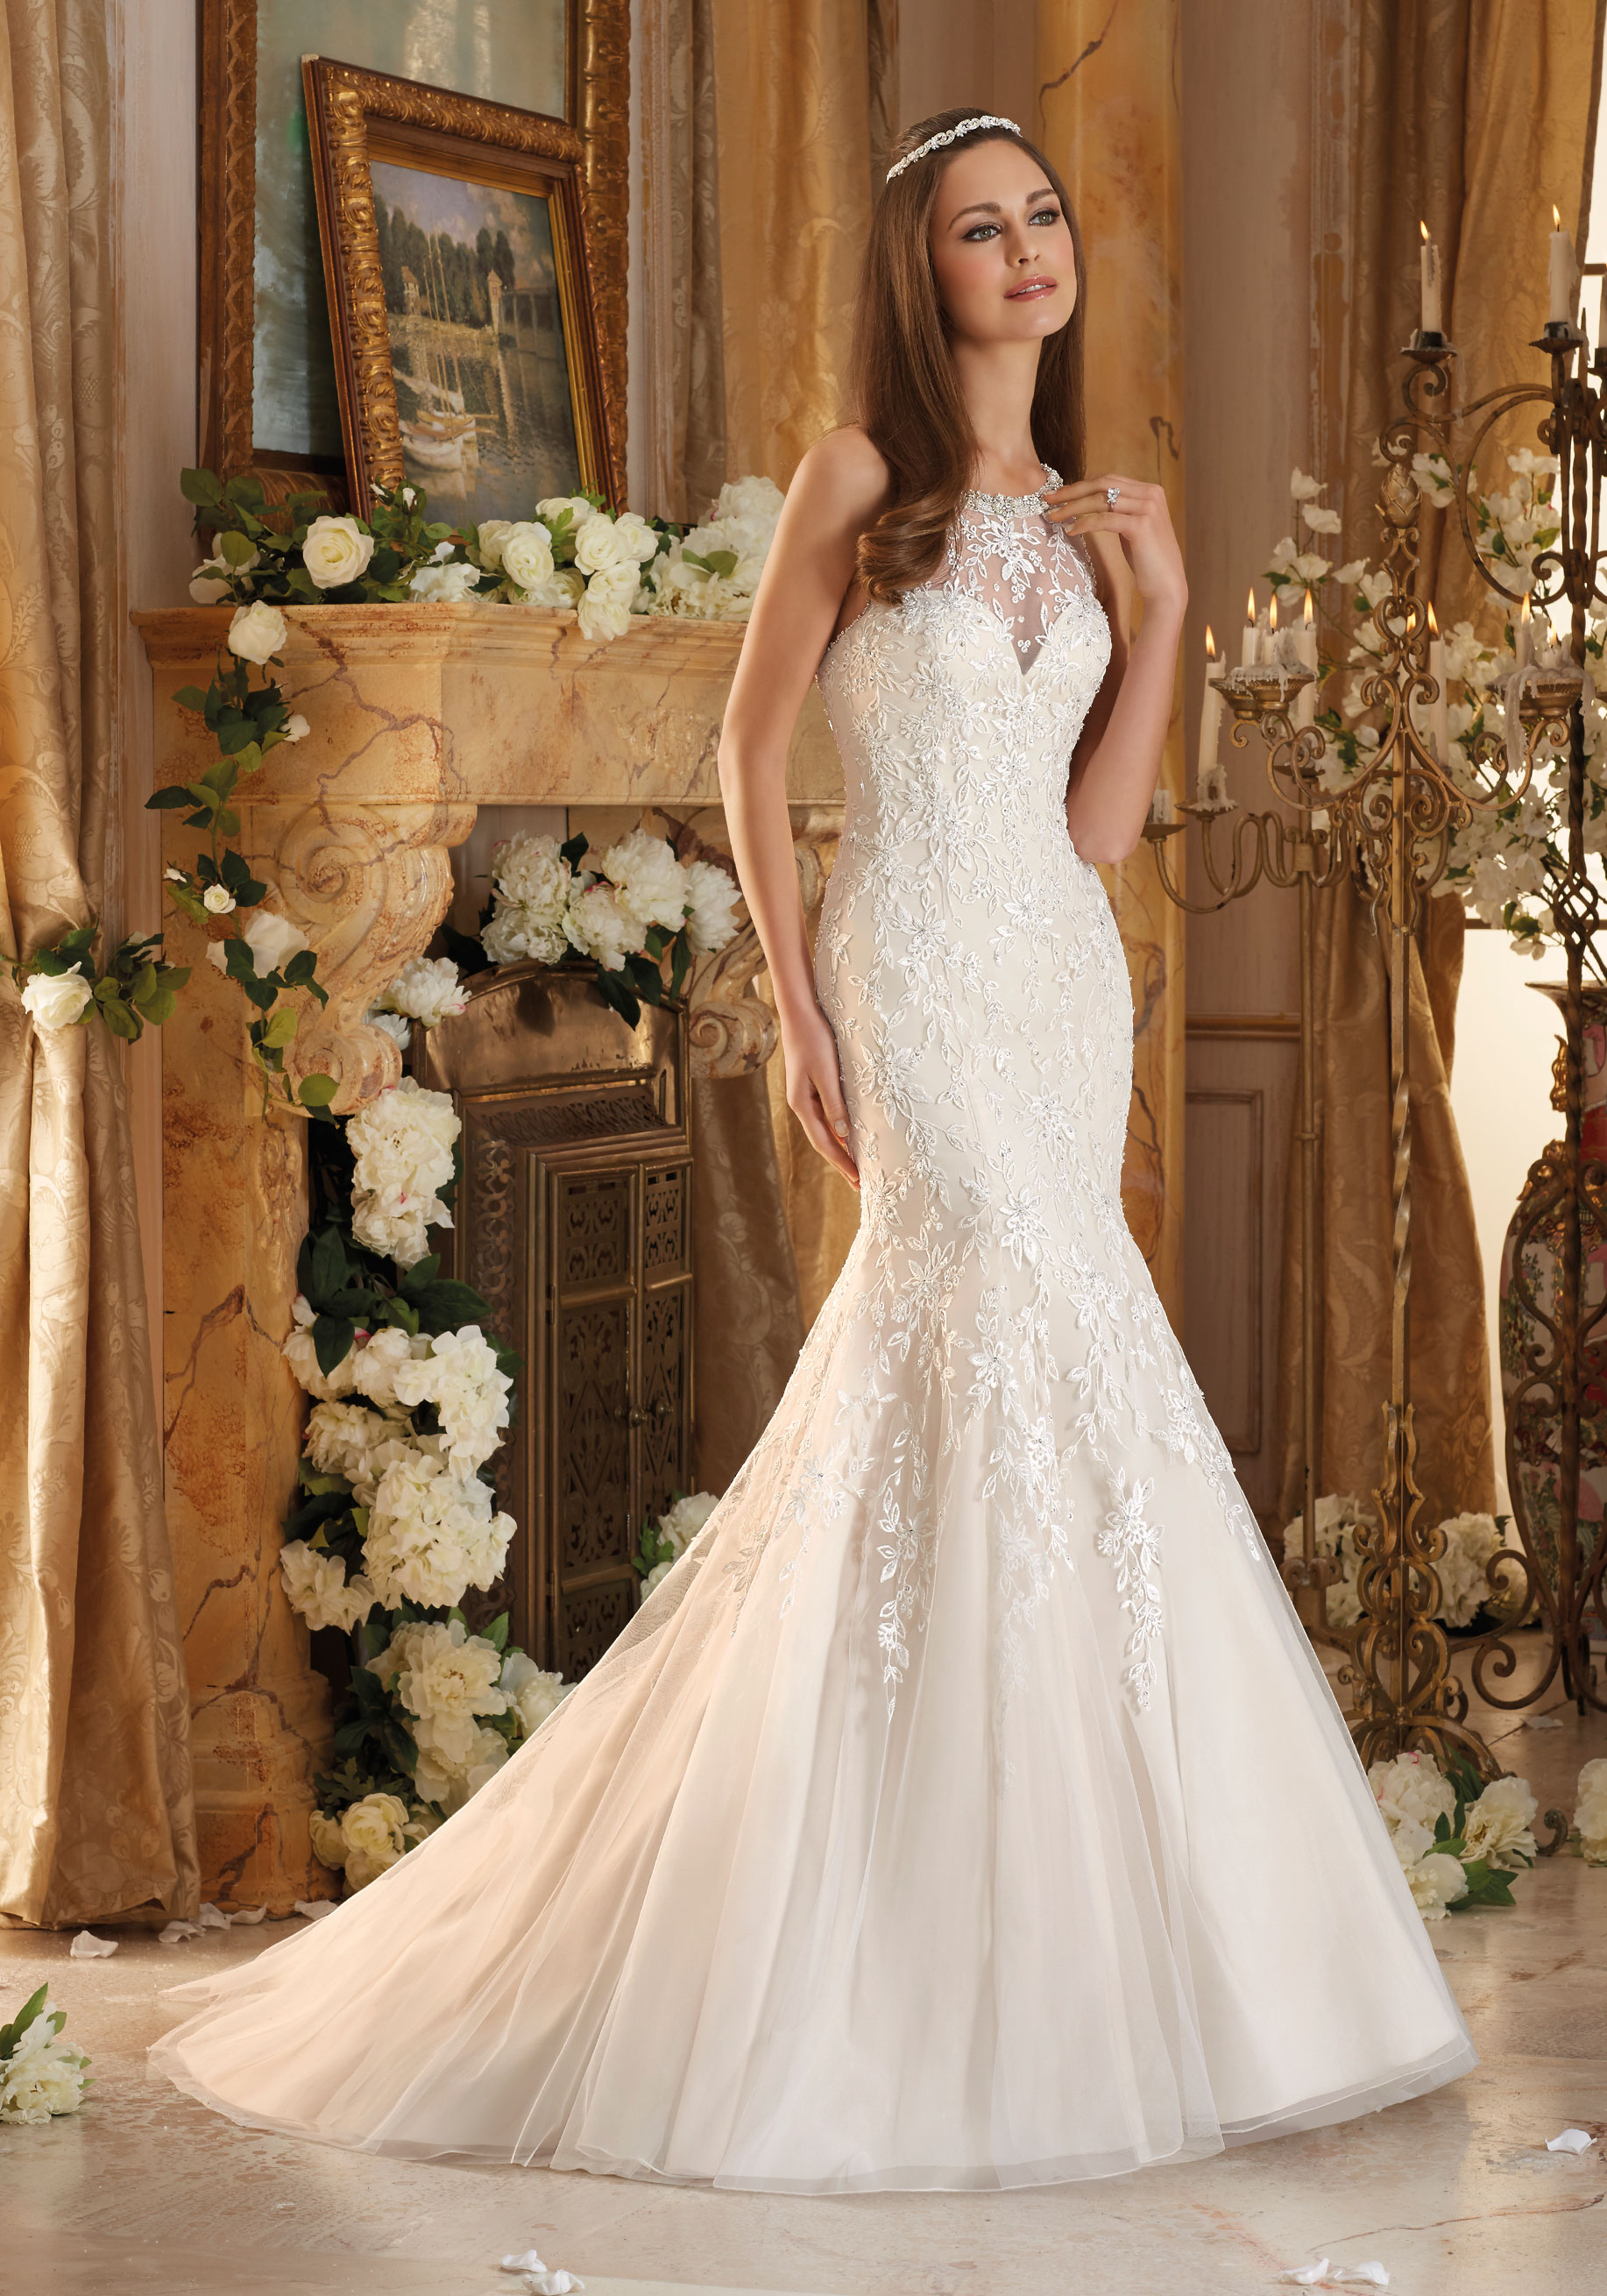 Top selling wedding gowns for the $1000 range at Amour Bridal ...